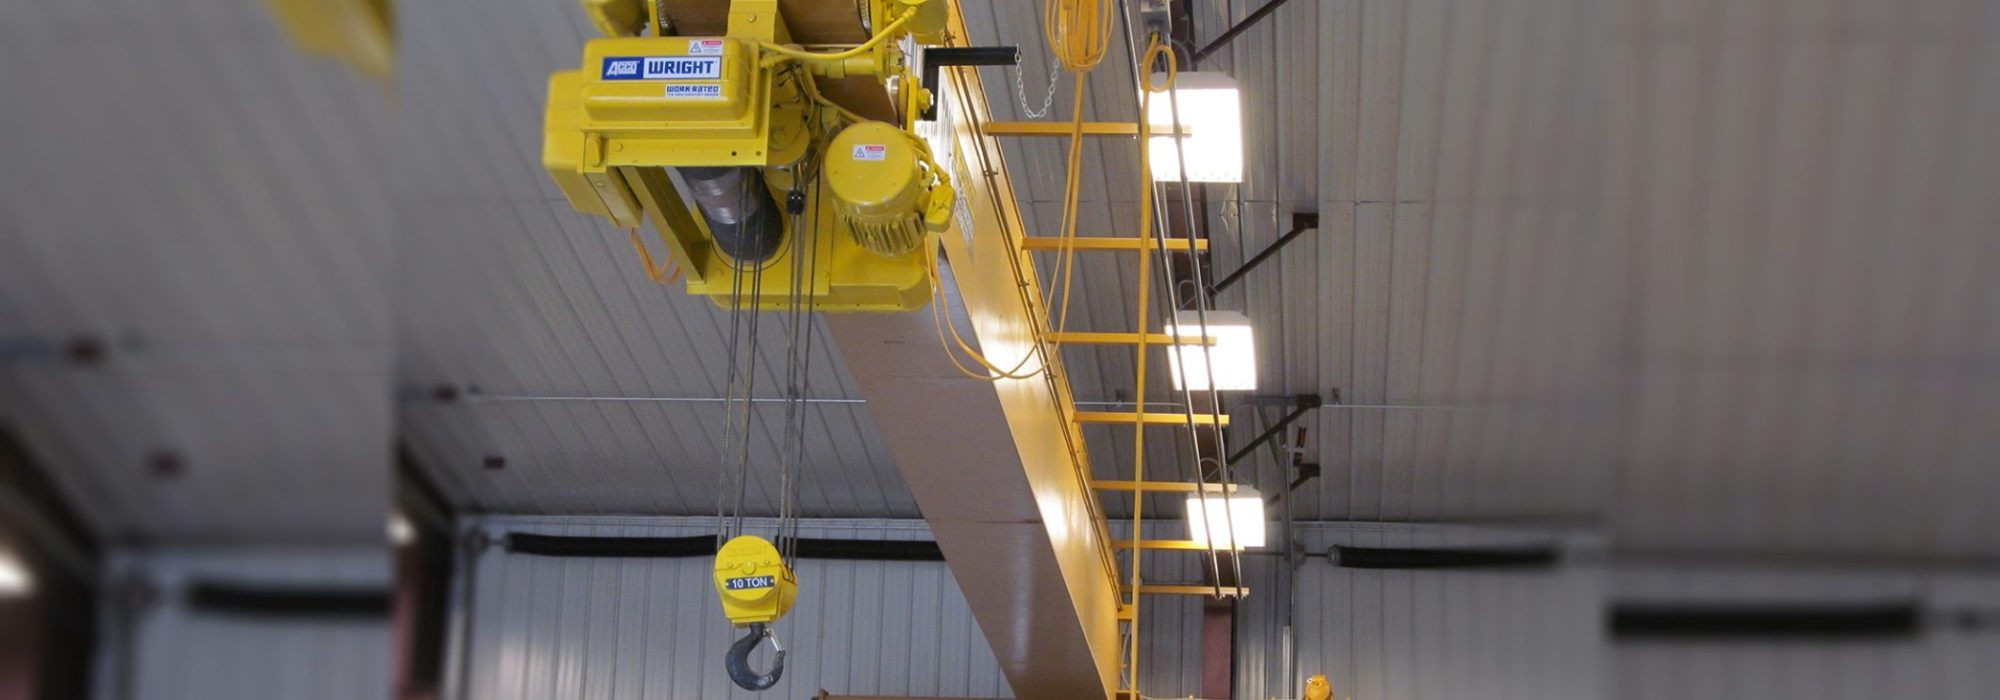 hight resolution of  electric chain hoists rapid ship wire rope hoists we keep industry moving